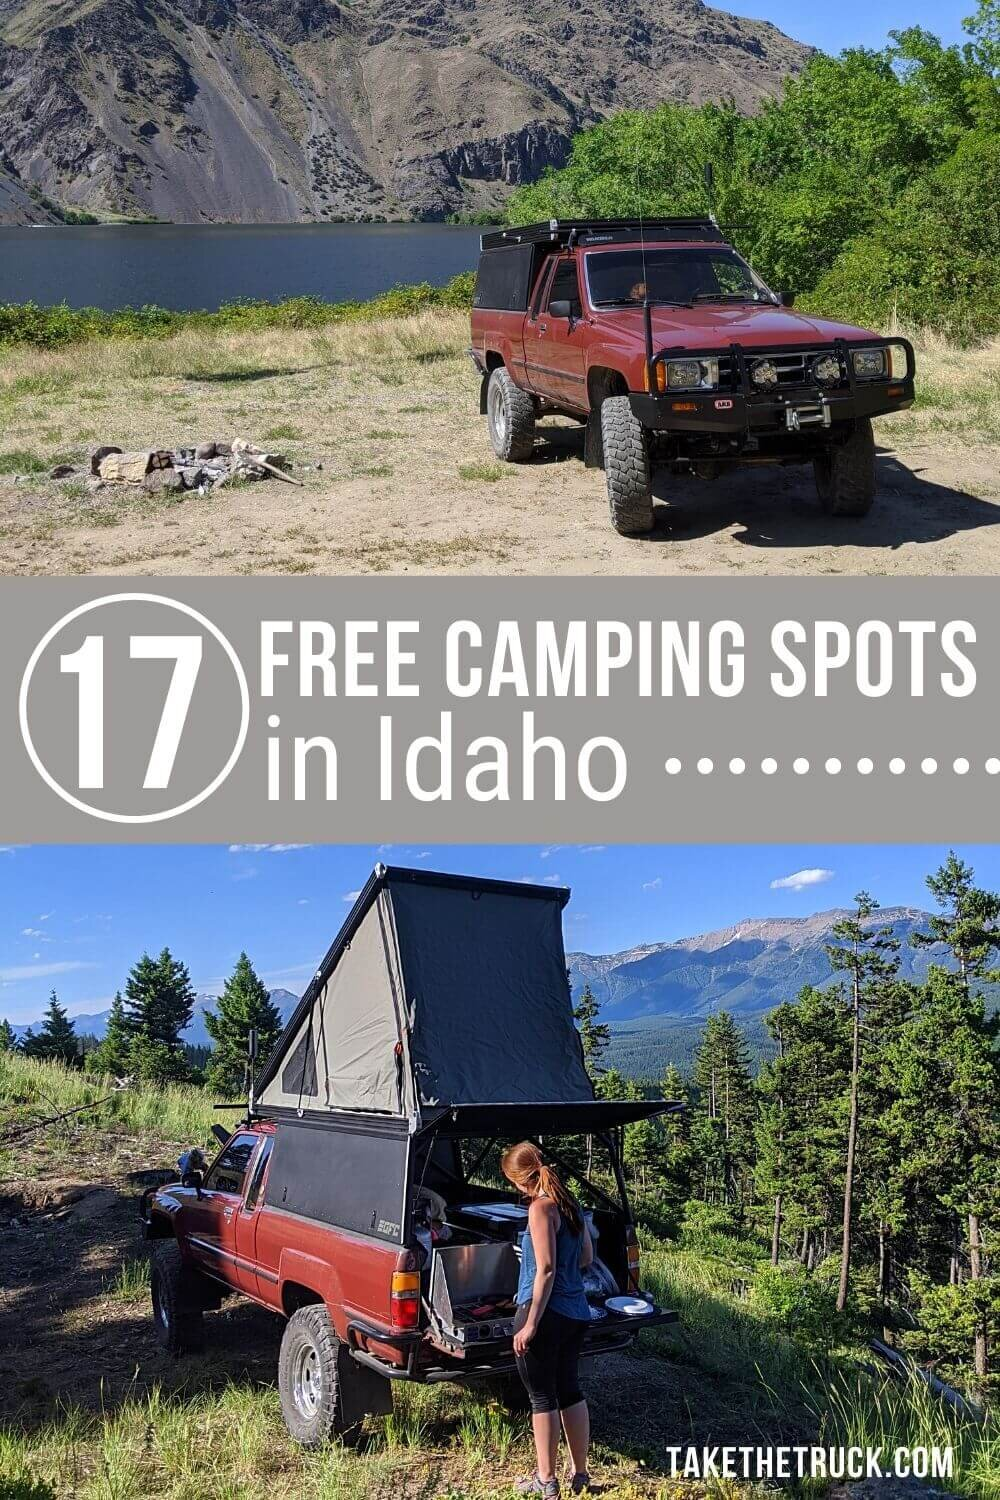 Looking for free camping in Idaho? This post gives all the details you'll need about 17 different boondocking spots - either national forest camping or blm camping in Idaho.